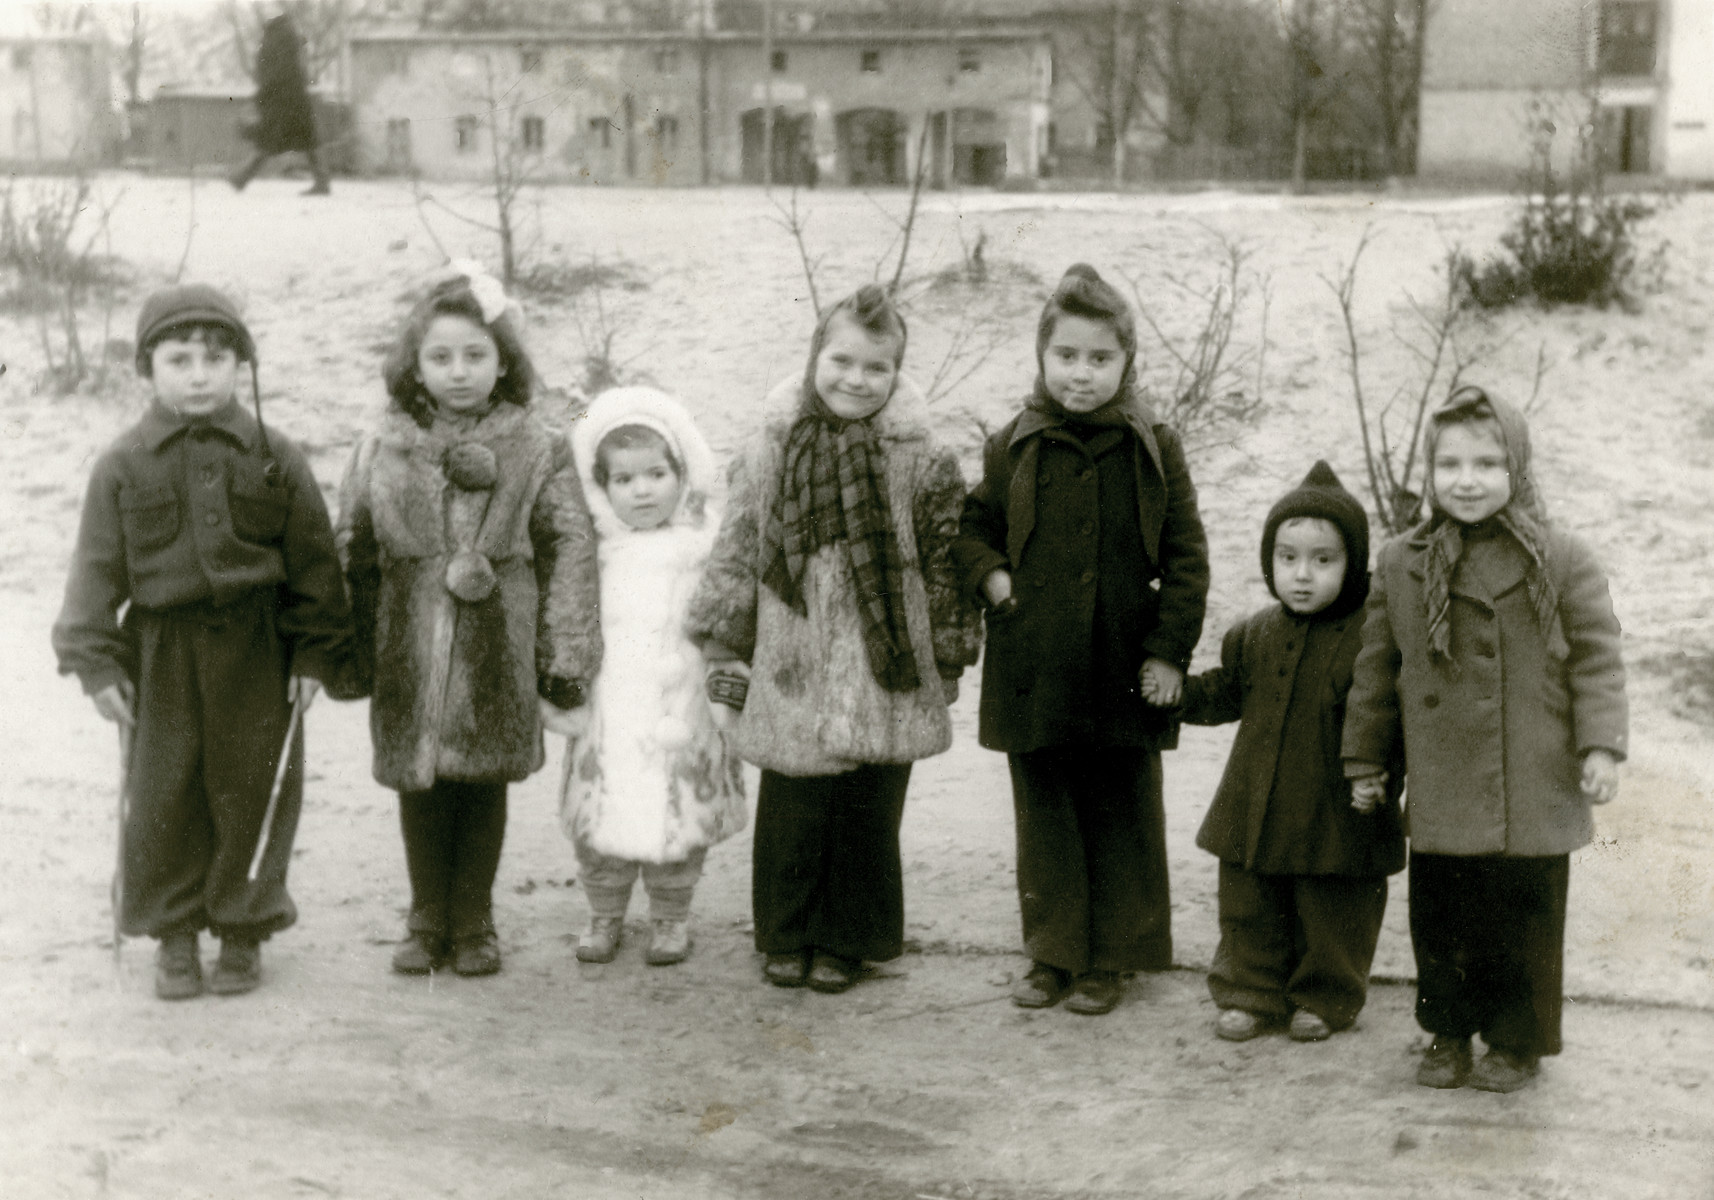 Clara stands outside with a group of young children in the Schlachtensee displaced persons camp  Clara is in the exact middle of the photo in a rabbit-fur coat.